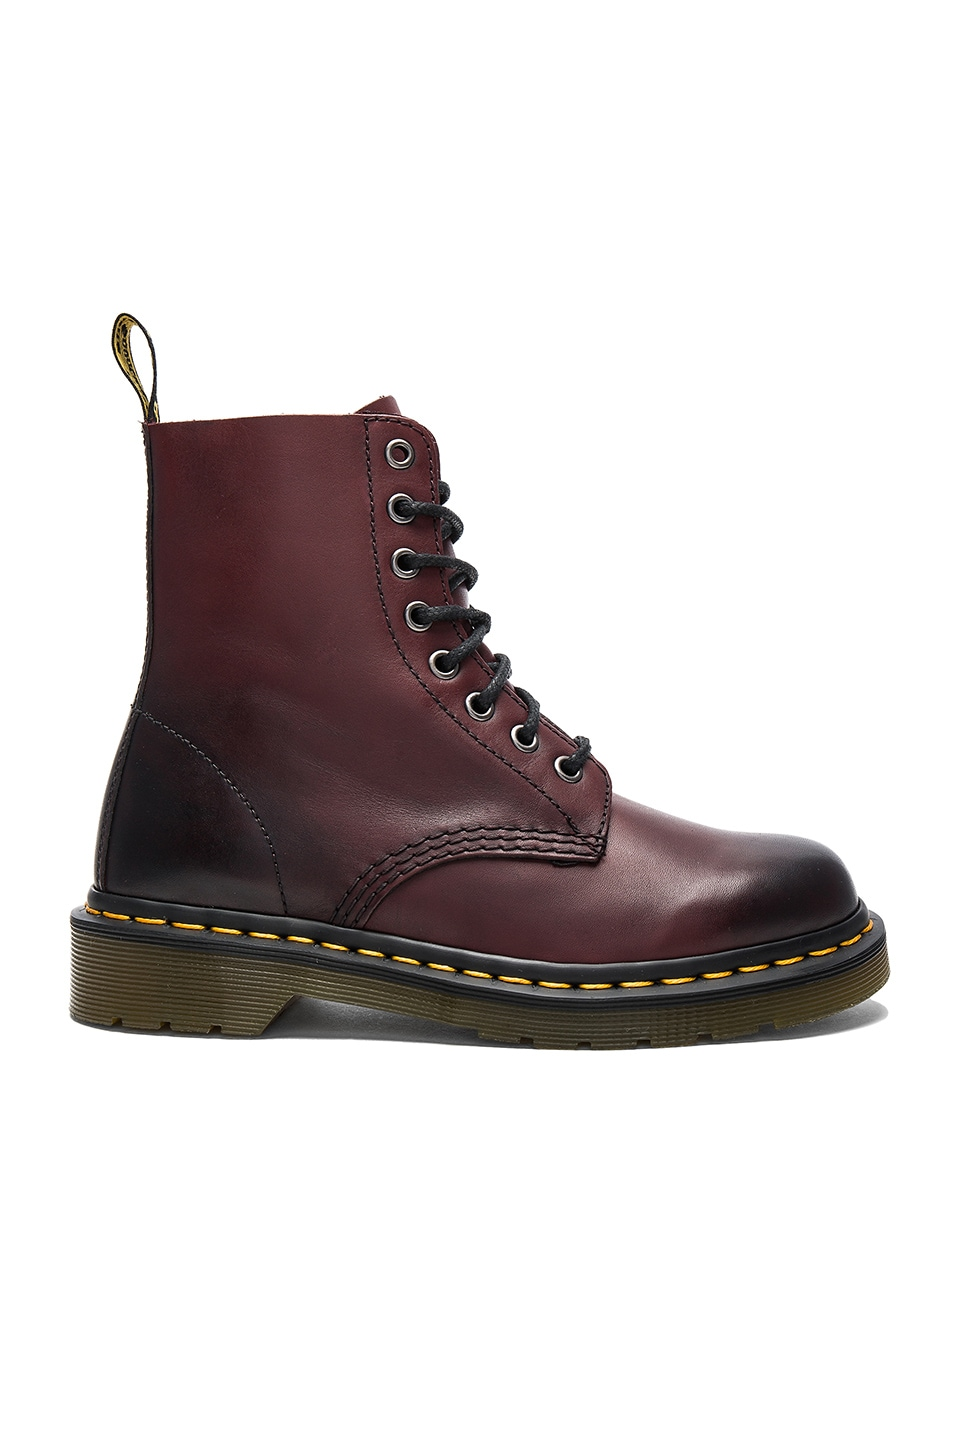 Dr. Martens Pascal 8 Eye Boot in Cherry Red